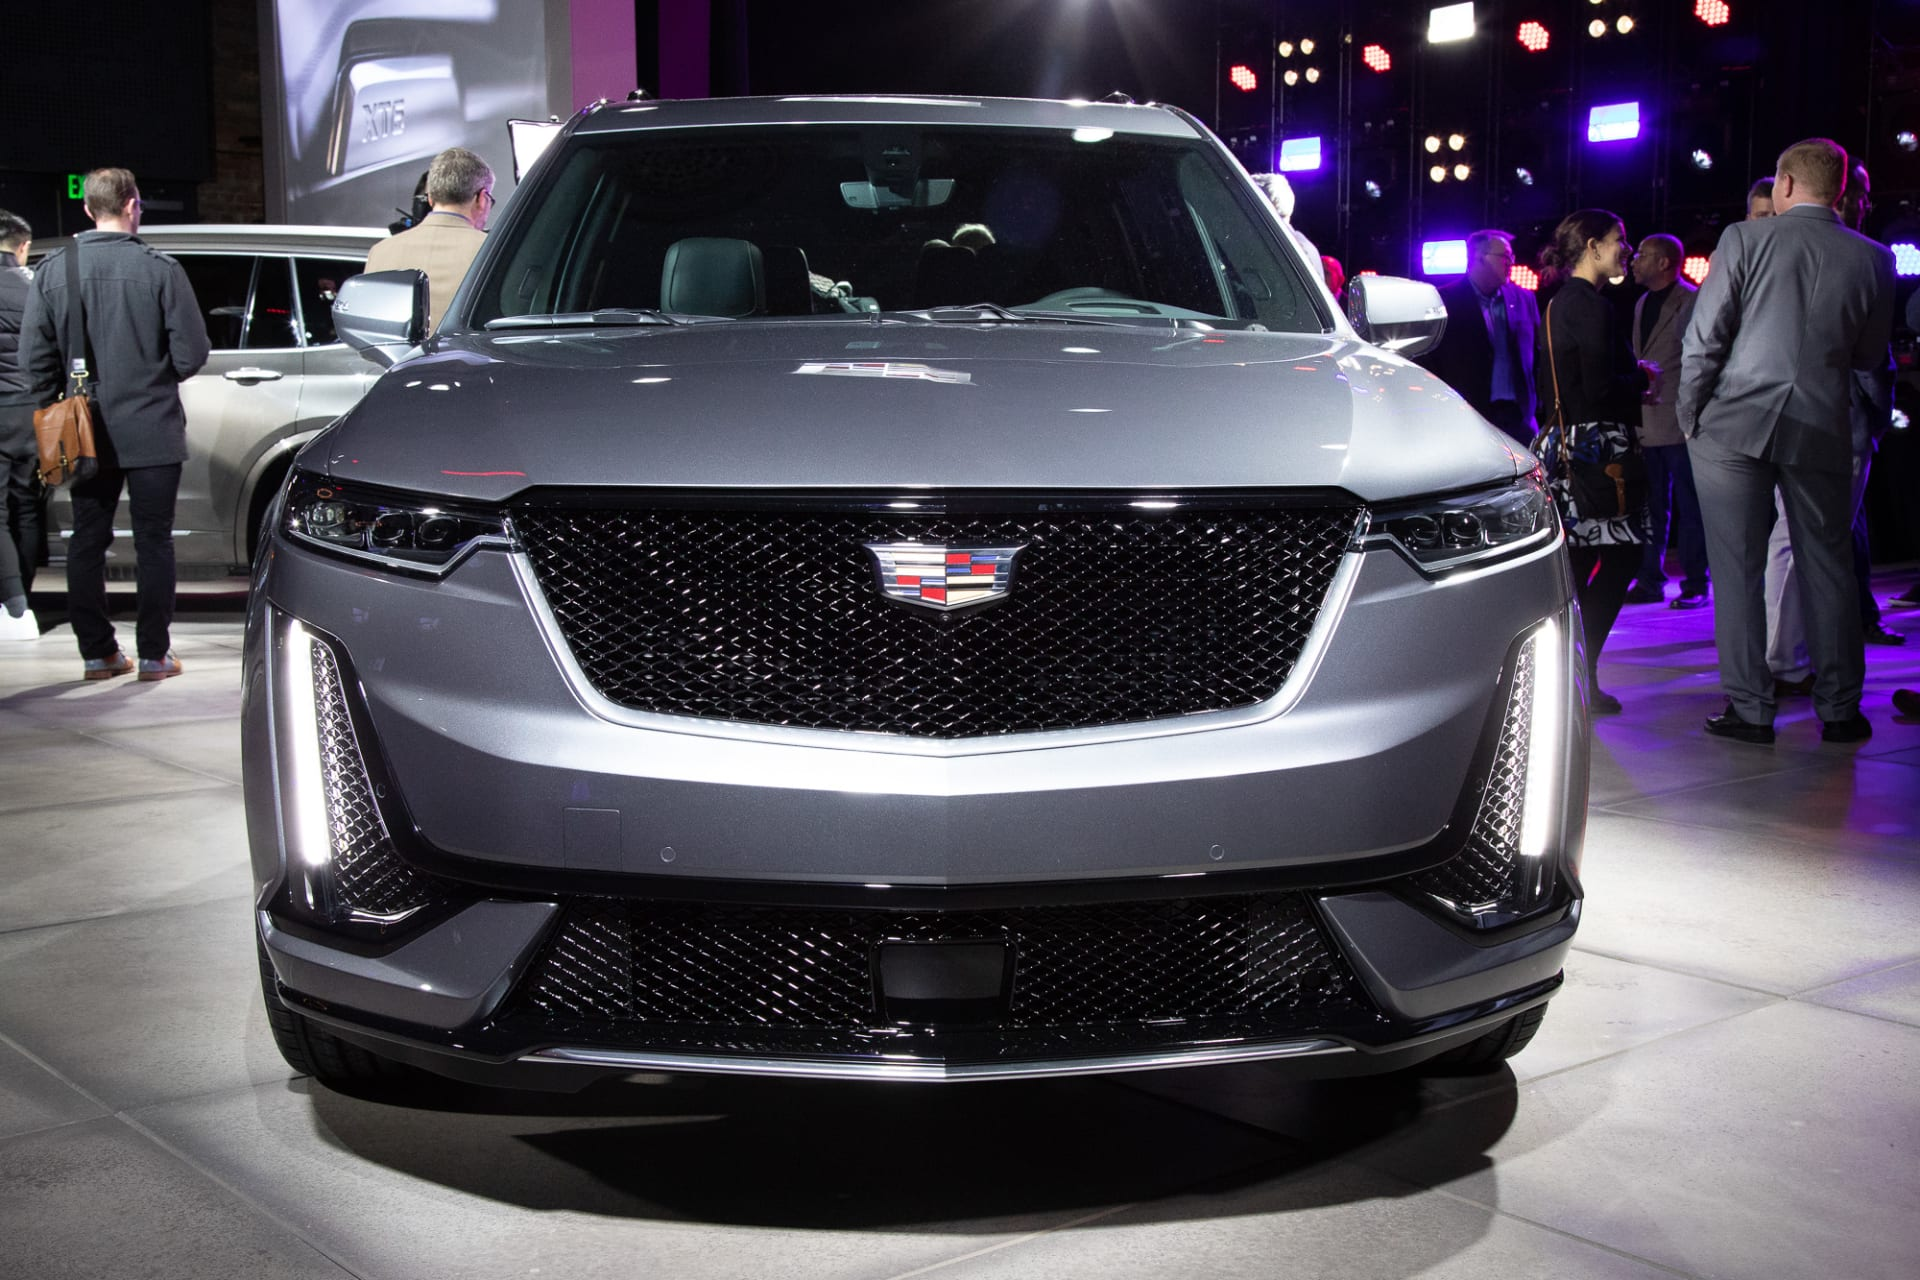 Auto Show 2020 Detroit.10 Biggest 2019 Detroit Auto Show Stories 2020 Cadillac Xt6